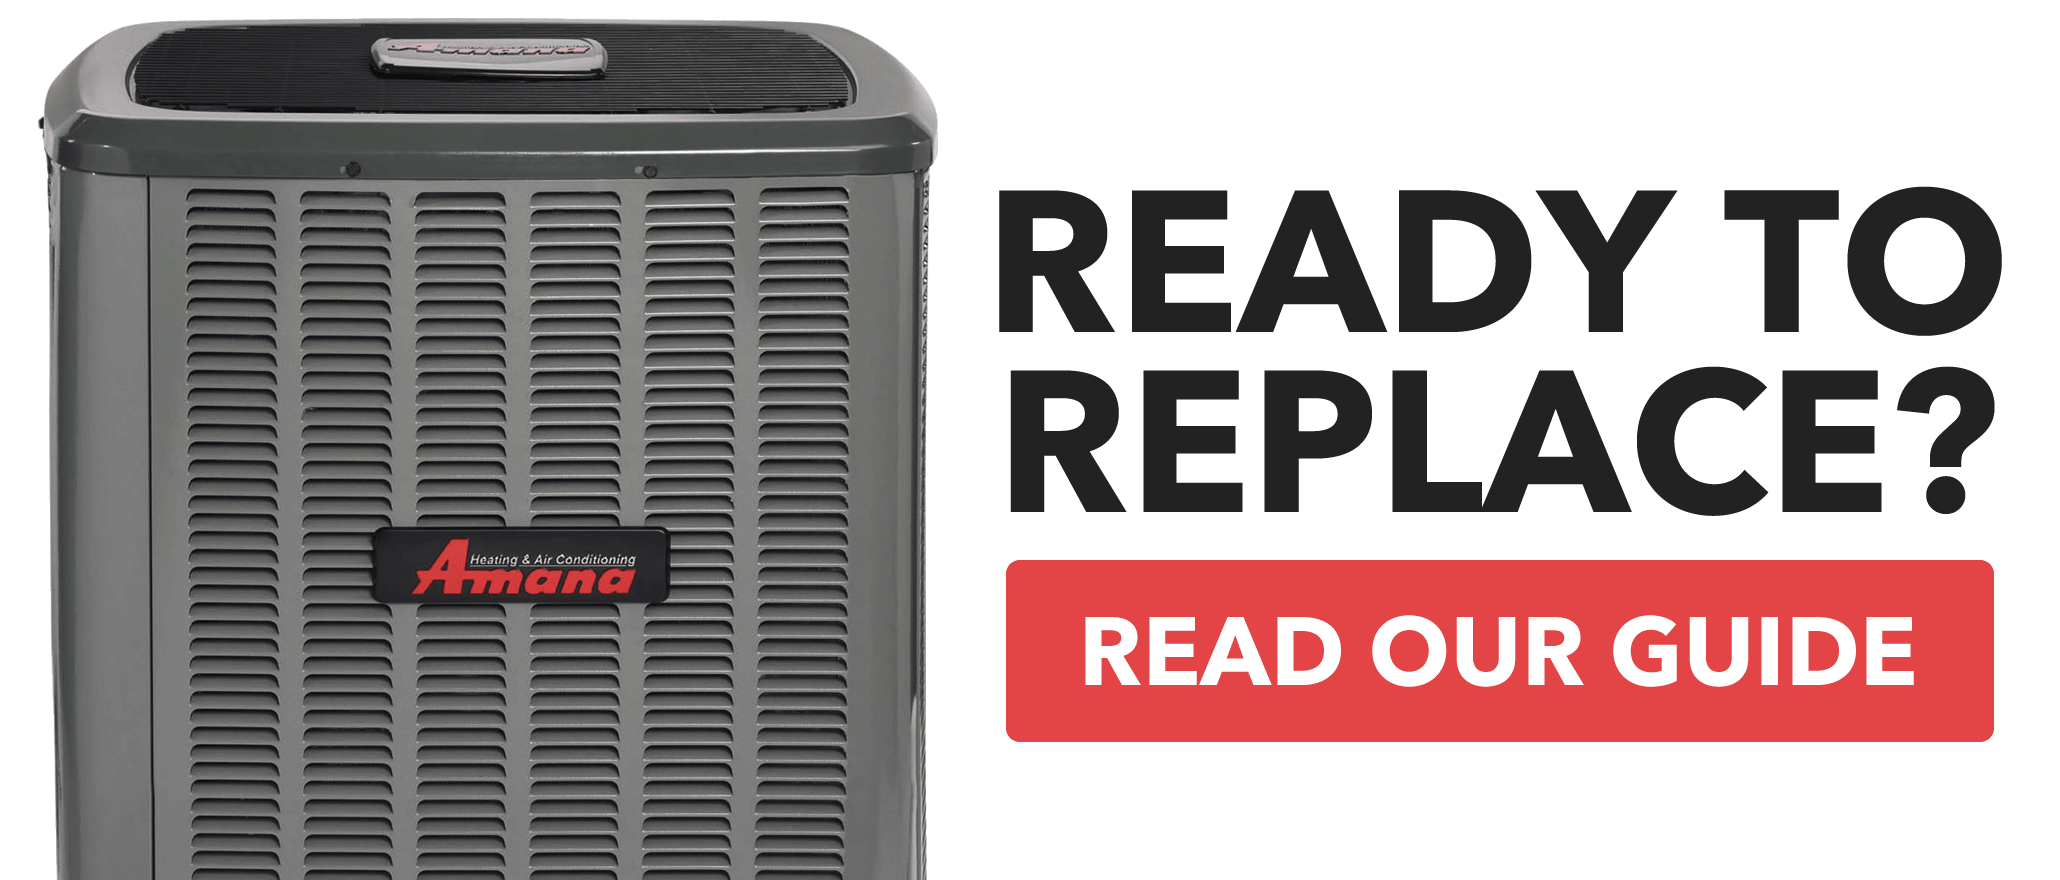 Looking to replace your Air Conditioner? Check out our AC Guide